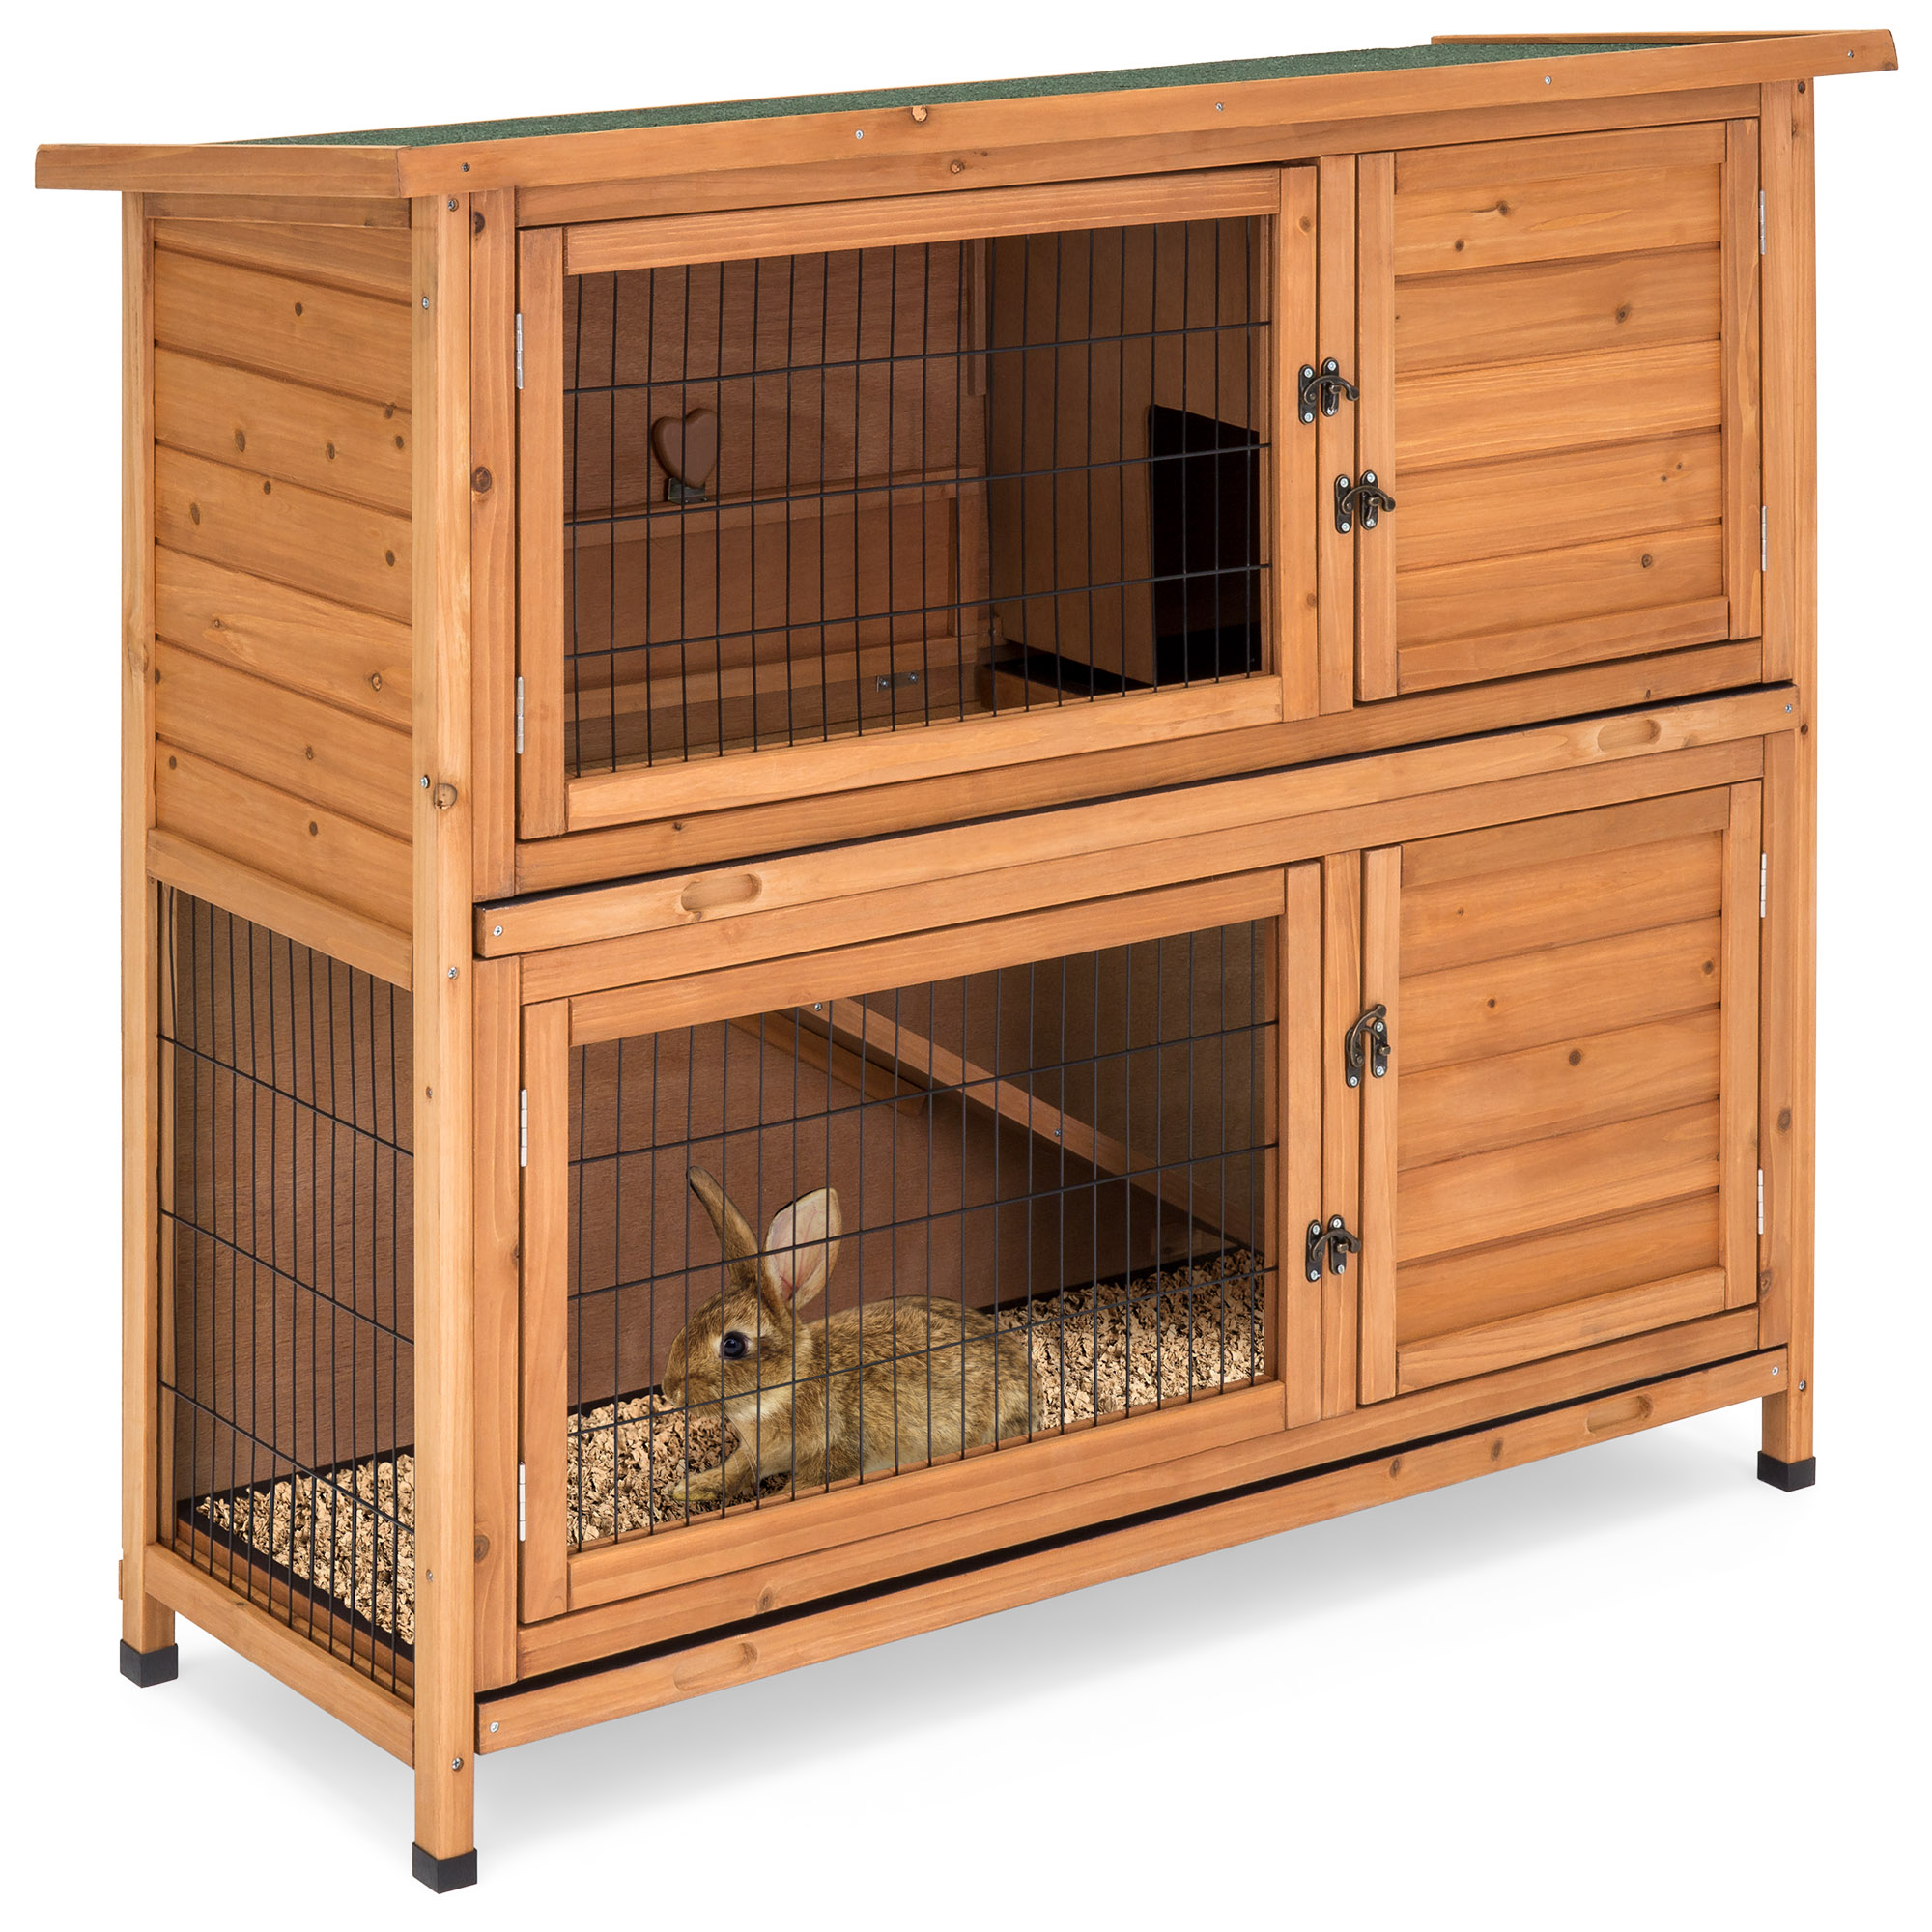 Best Choice Products 48x41in 2-Story Outdoor Wooden Pet Rabbit Hutch Animal Cage by Best Choice Products